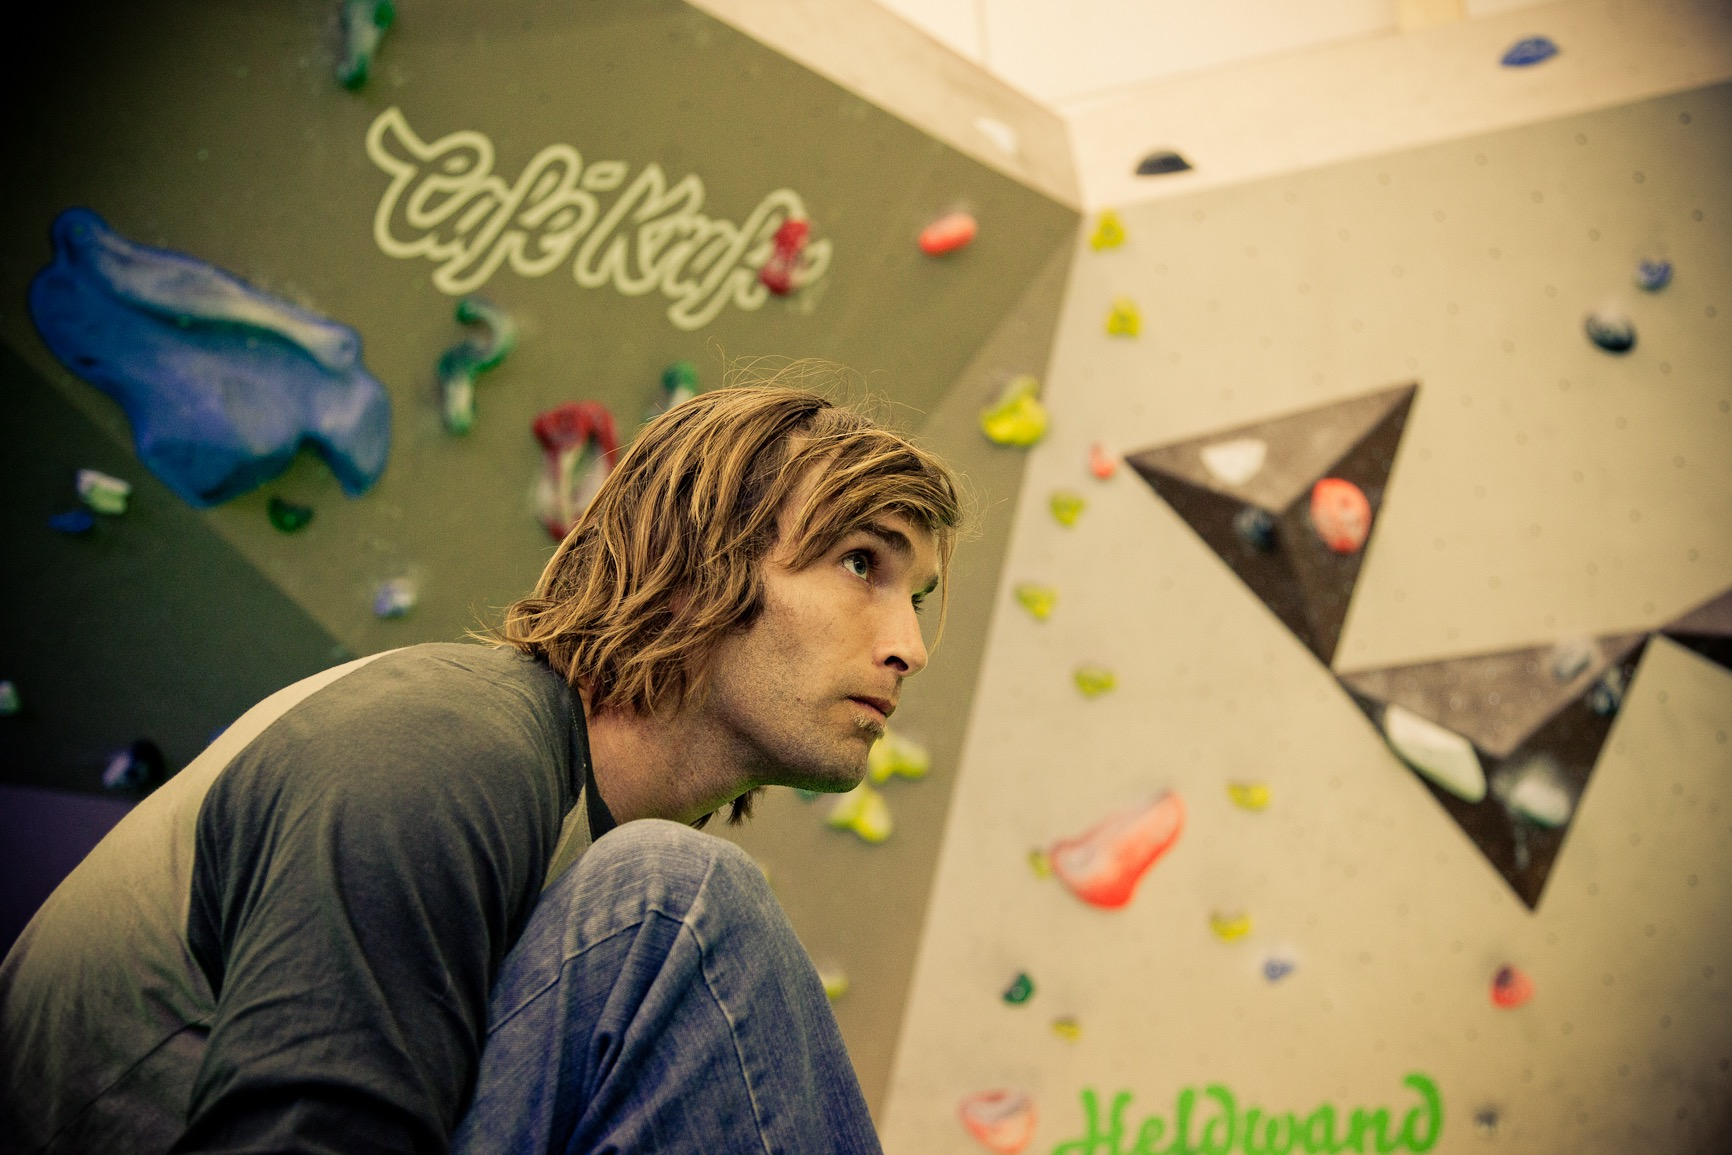 Chris Sharma en Café Kraft (2011)